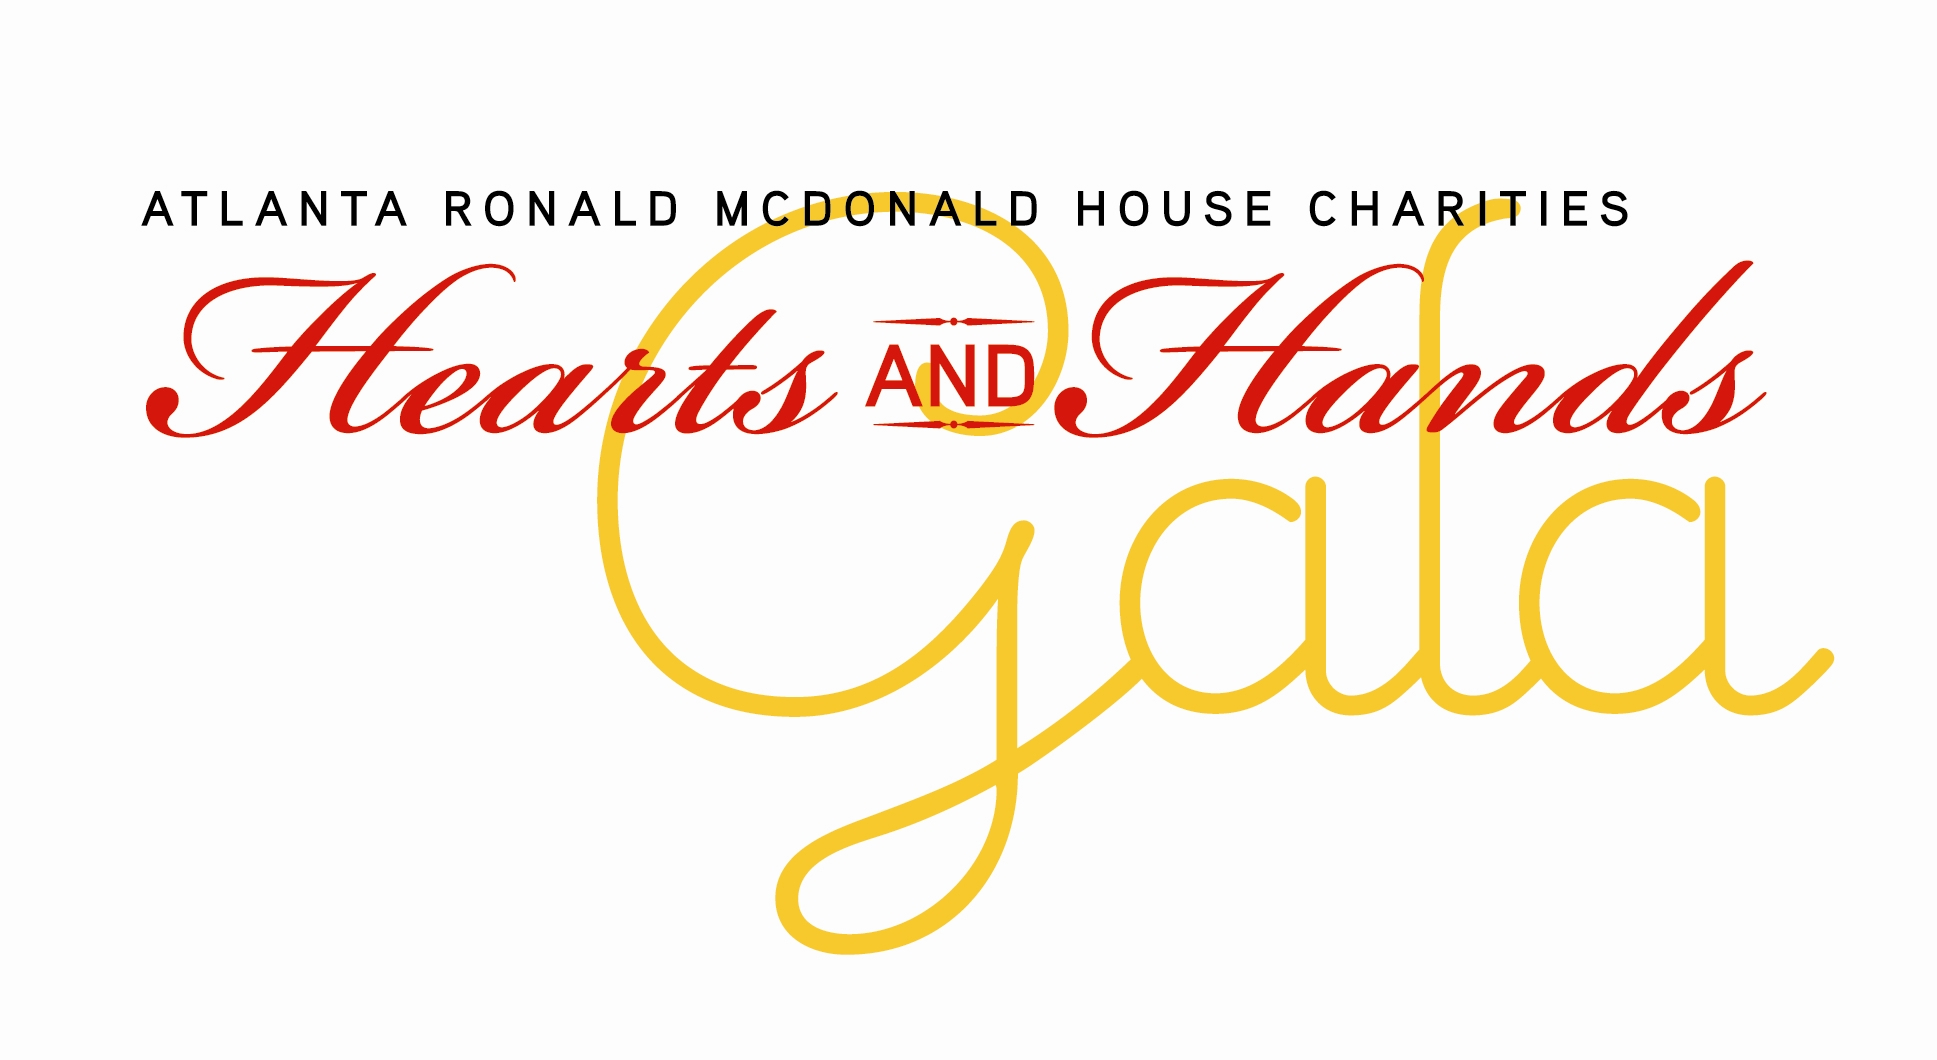 Atlanta Ronald McDonald House Hearts and Hands Gala